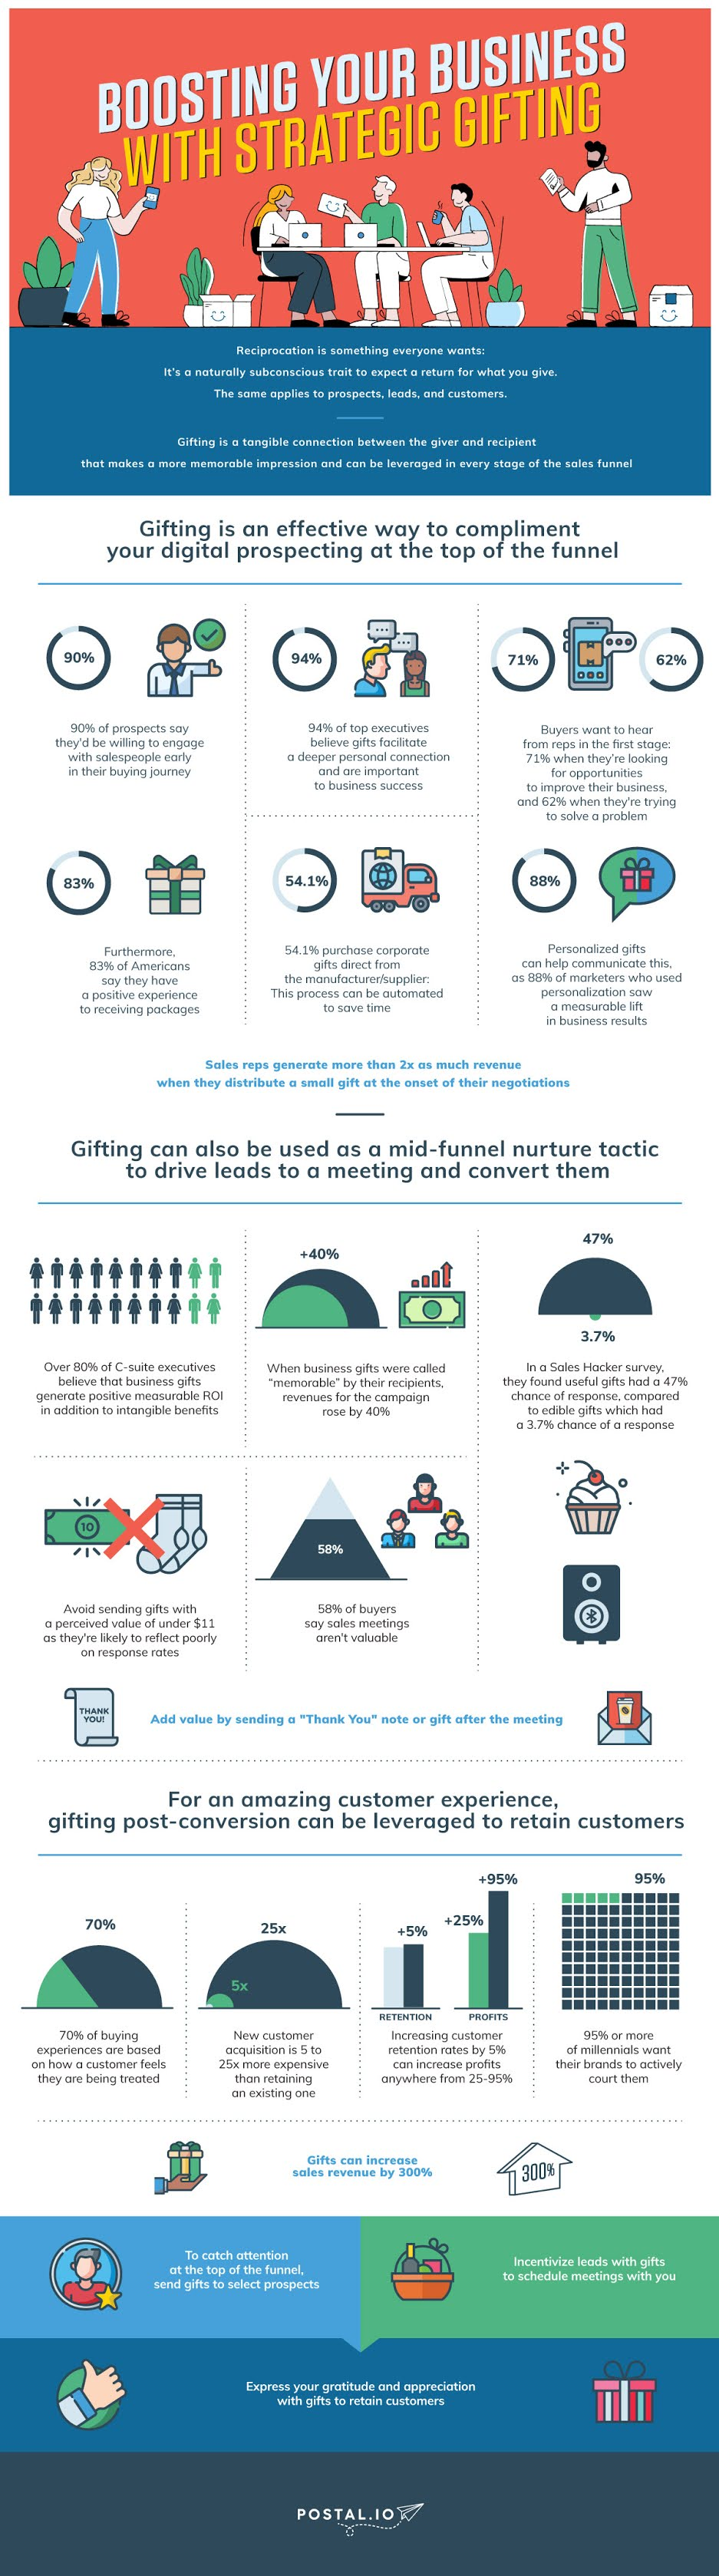 Boosting Your Business with Strategic Gifting #infographic